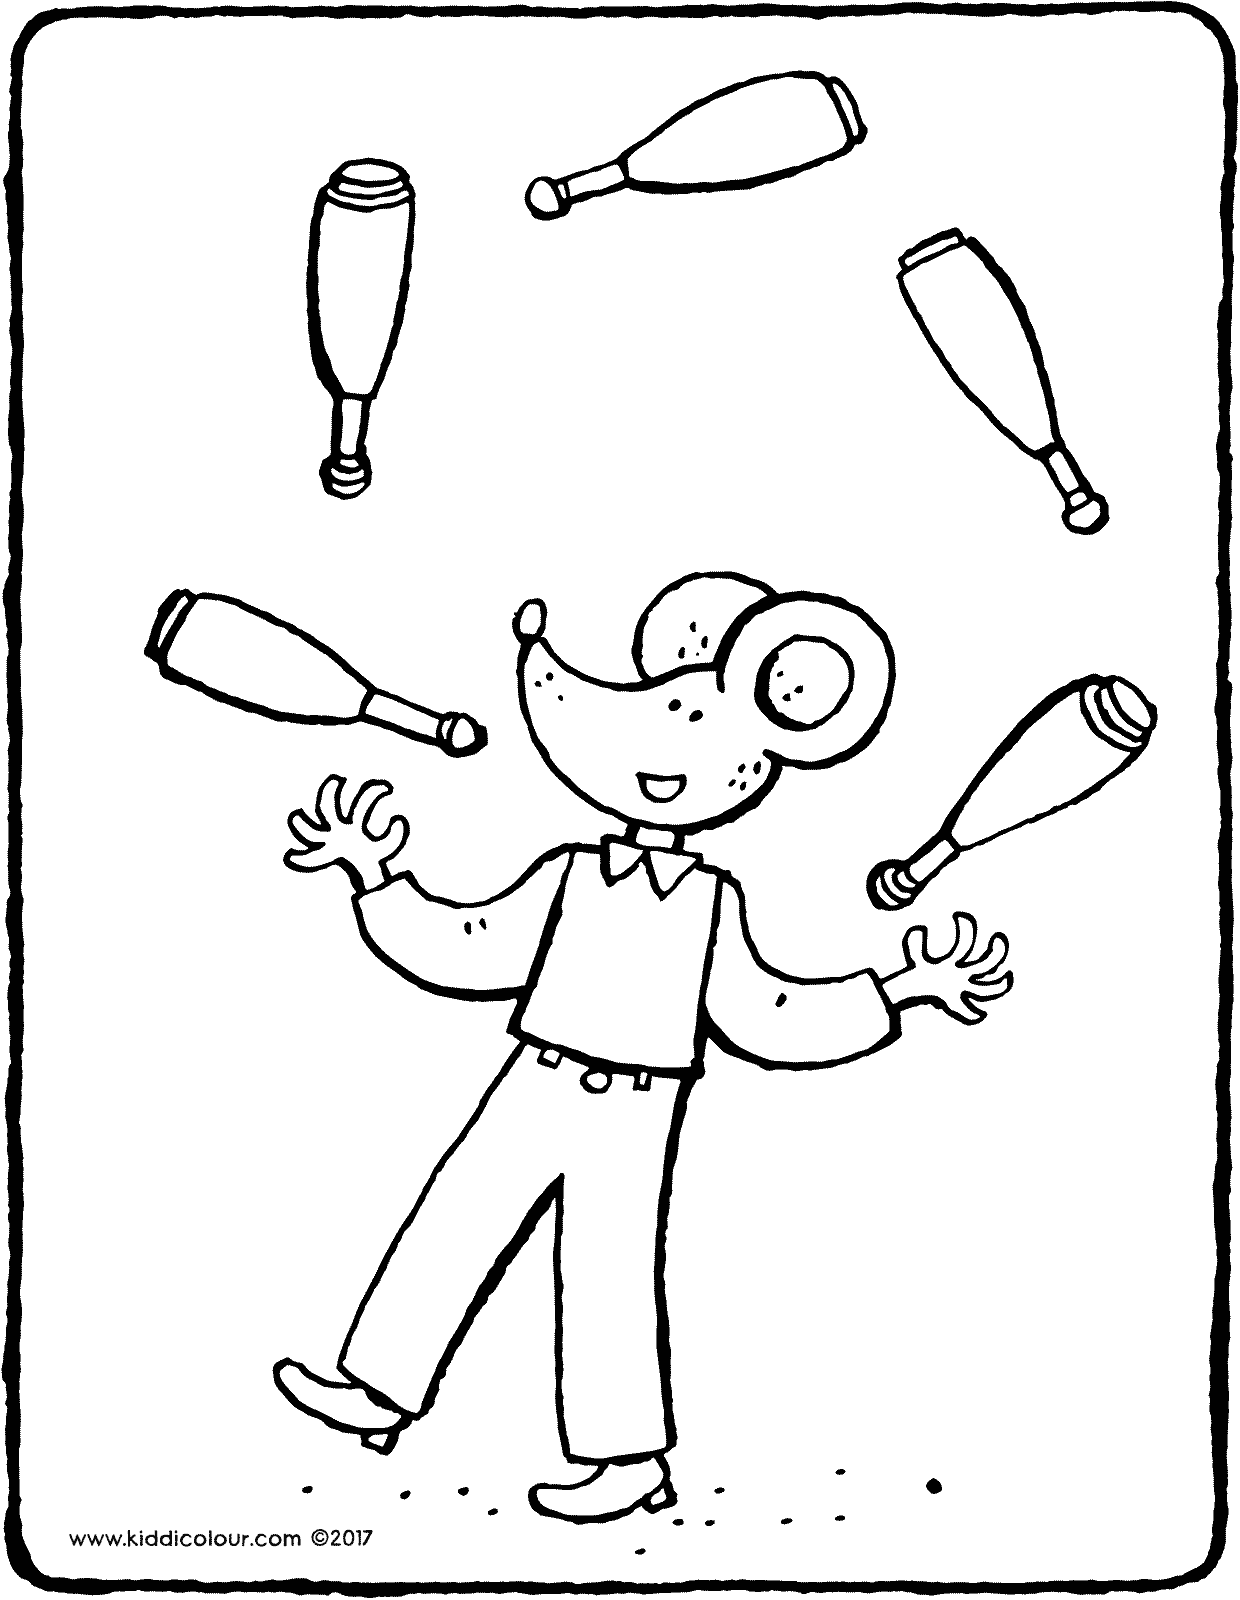 Thomas juggling clubs colouring page drawing picture 01V